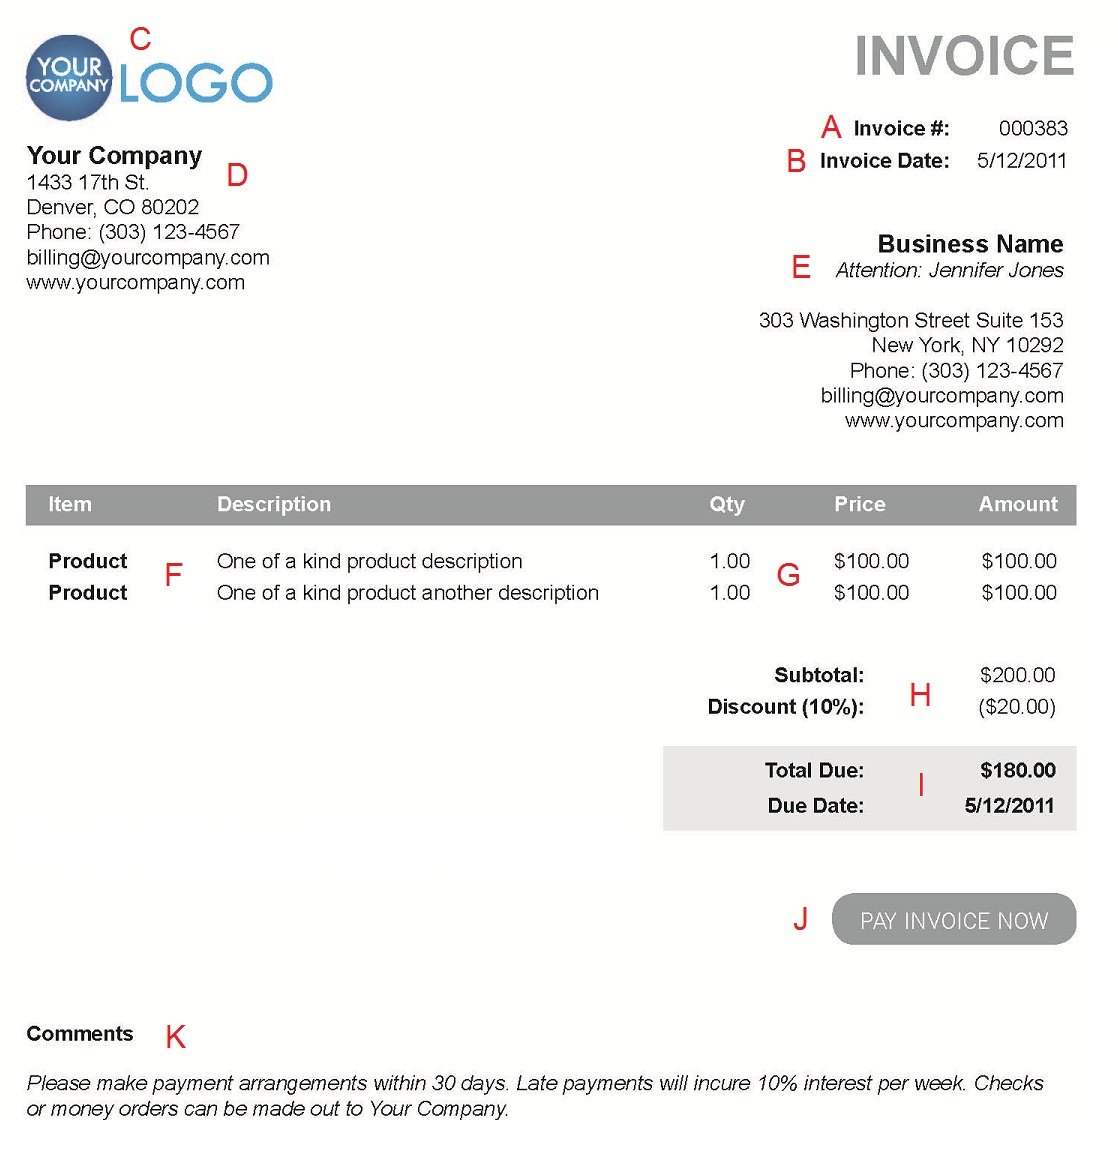 Usdgus  Picturesque The  Different Sections Of An Electronic Payment Invoice With Remarkable A  With Appealing What Does Dealer Invoice Price Mean Also Invoice Business In Addition Invoice Programs For Mac And Free Invoice Template For Excel As Well As Send Invoices Online Additionally Canadian Customs Invoice Instructions From Paysimplecom With Usdgus  Remarkable The  Different Sections Of An Electronic Payment Invoice With Appealing A  And Picturesque What Does Dealer Invoice Price Mean Also Invoice Business In Addition Invoice Programs For Mac From Paysimplecom